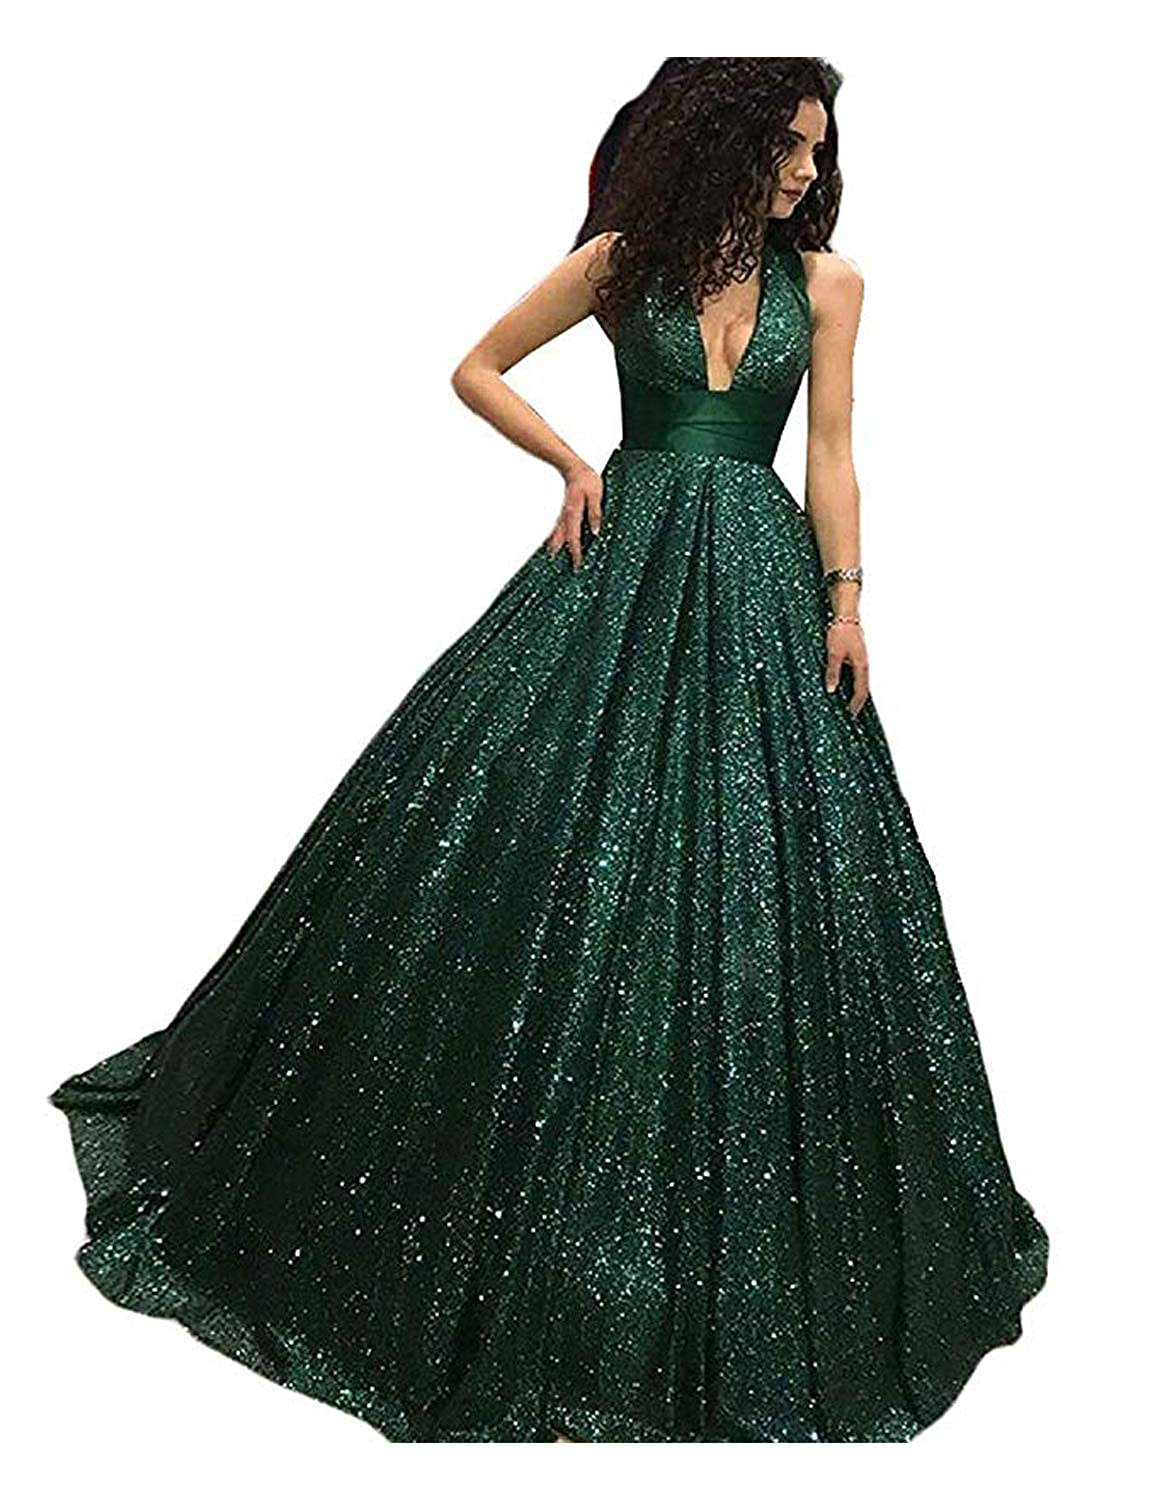 Dark Green CIRCLEWLD Halter V Neck Sequin Long Prom Dress Princess Pageant Ball Gown Evening E60